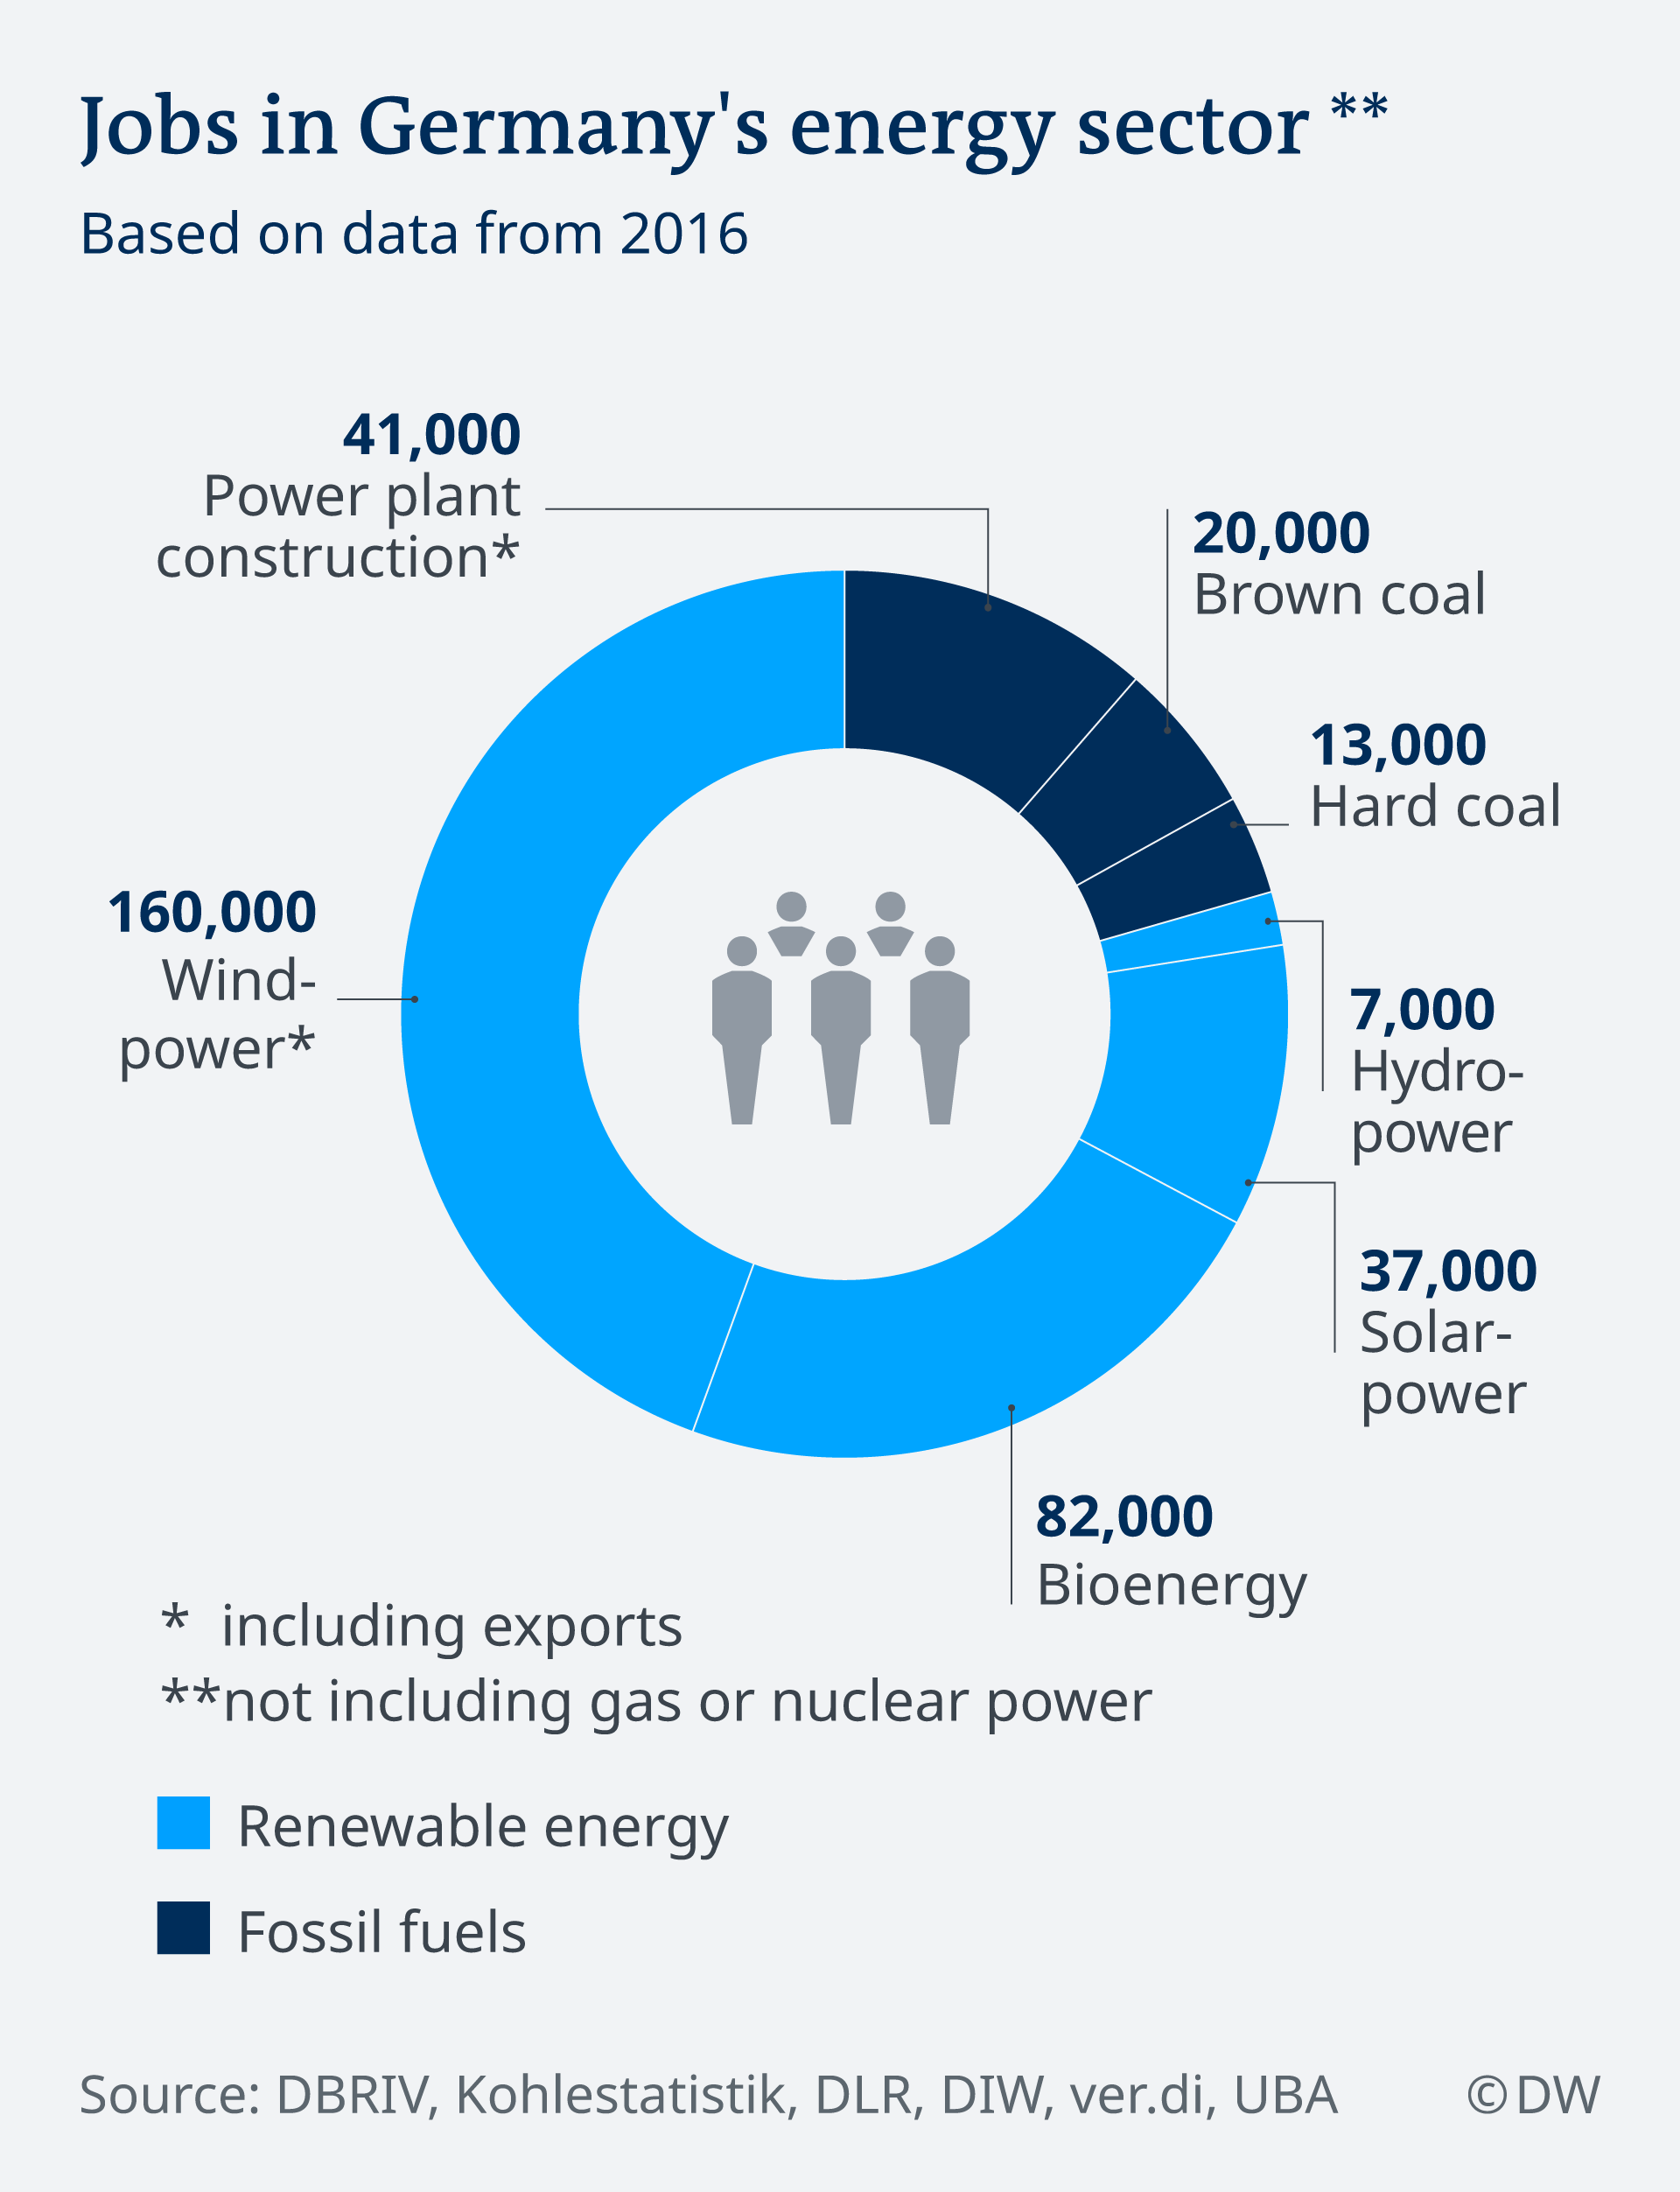 An infographic showing the number of jobs in Germany's energy sector according to energy type. Wind power is the highest, employing 160,000 people, while hydropower is the lowest at 7,000. Brown coal and hard coal employs 20,000 and 13,000 people, respectively.